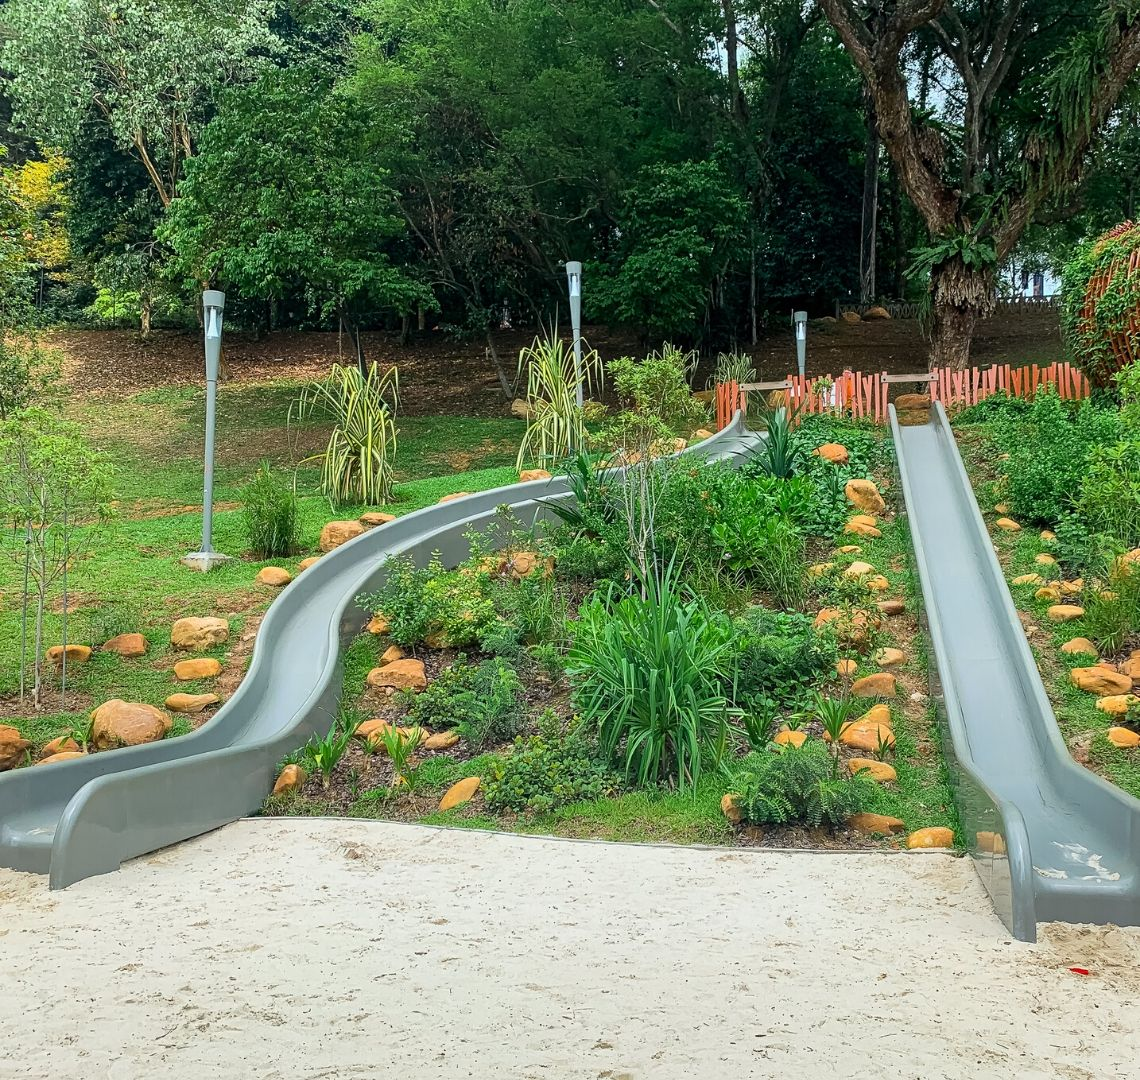 Playgrounds In Singapore With Kids - white industrial sand is at the bottom of 2 grey slides - one is completely straight while the other has some curves. Around them and in between them are grass, small shrubs and orangey stones. There are modern looking lampposts to the left curved slide and a faux fence at the top. Behind that there are trees.